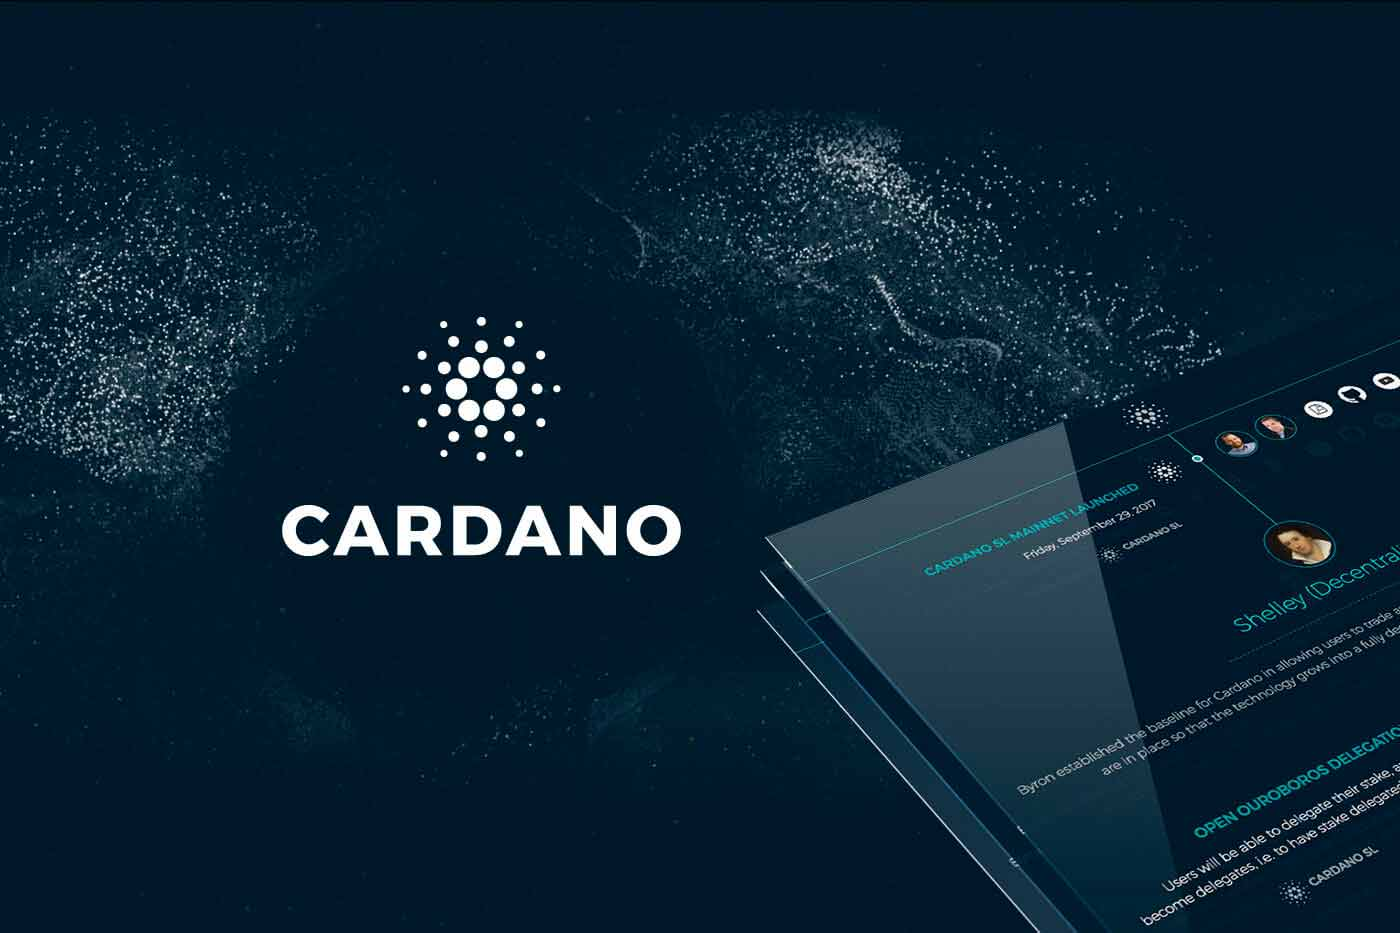 THE CARDANO FOUNDATION: CRYPTO EDUCATION IN AFRICA